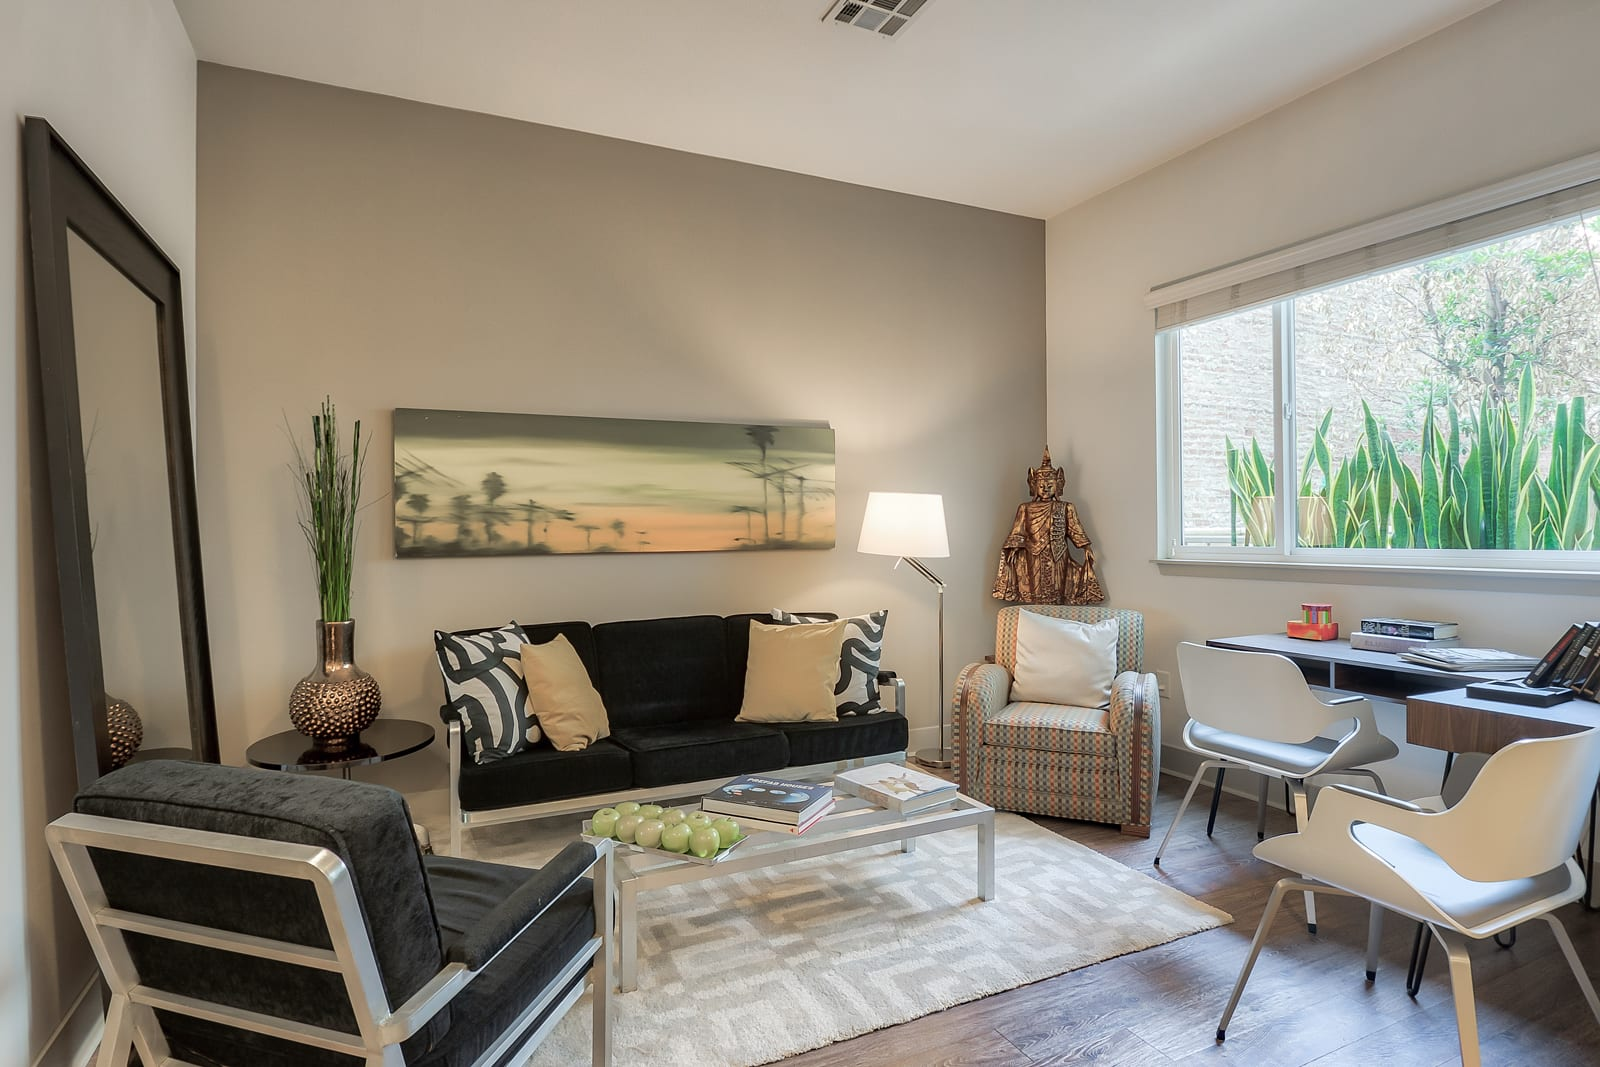 Open Concept Floor Plans at 1000 Grand by Windsor, Los Angeles, CA